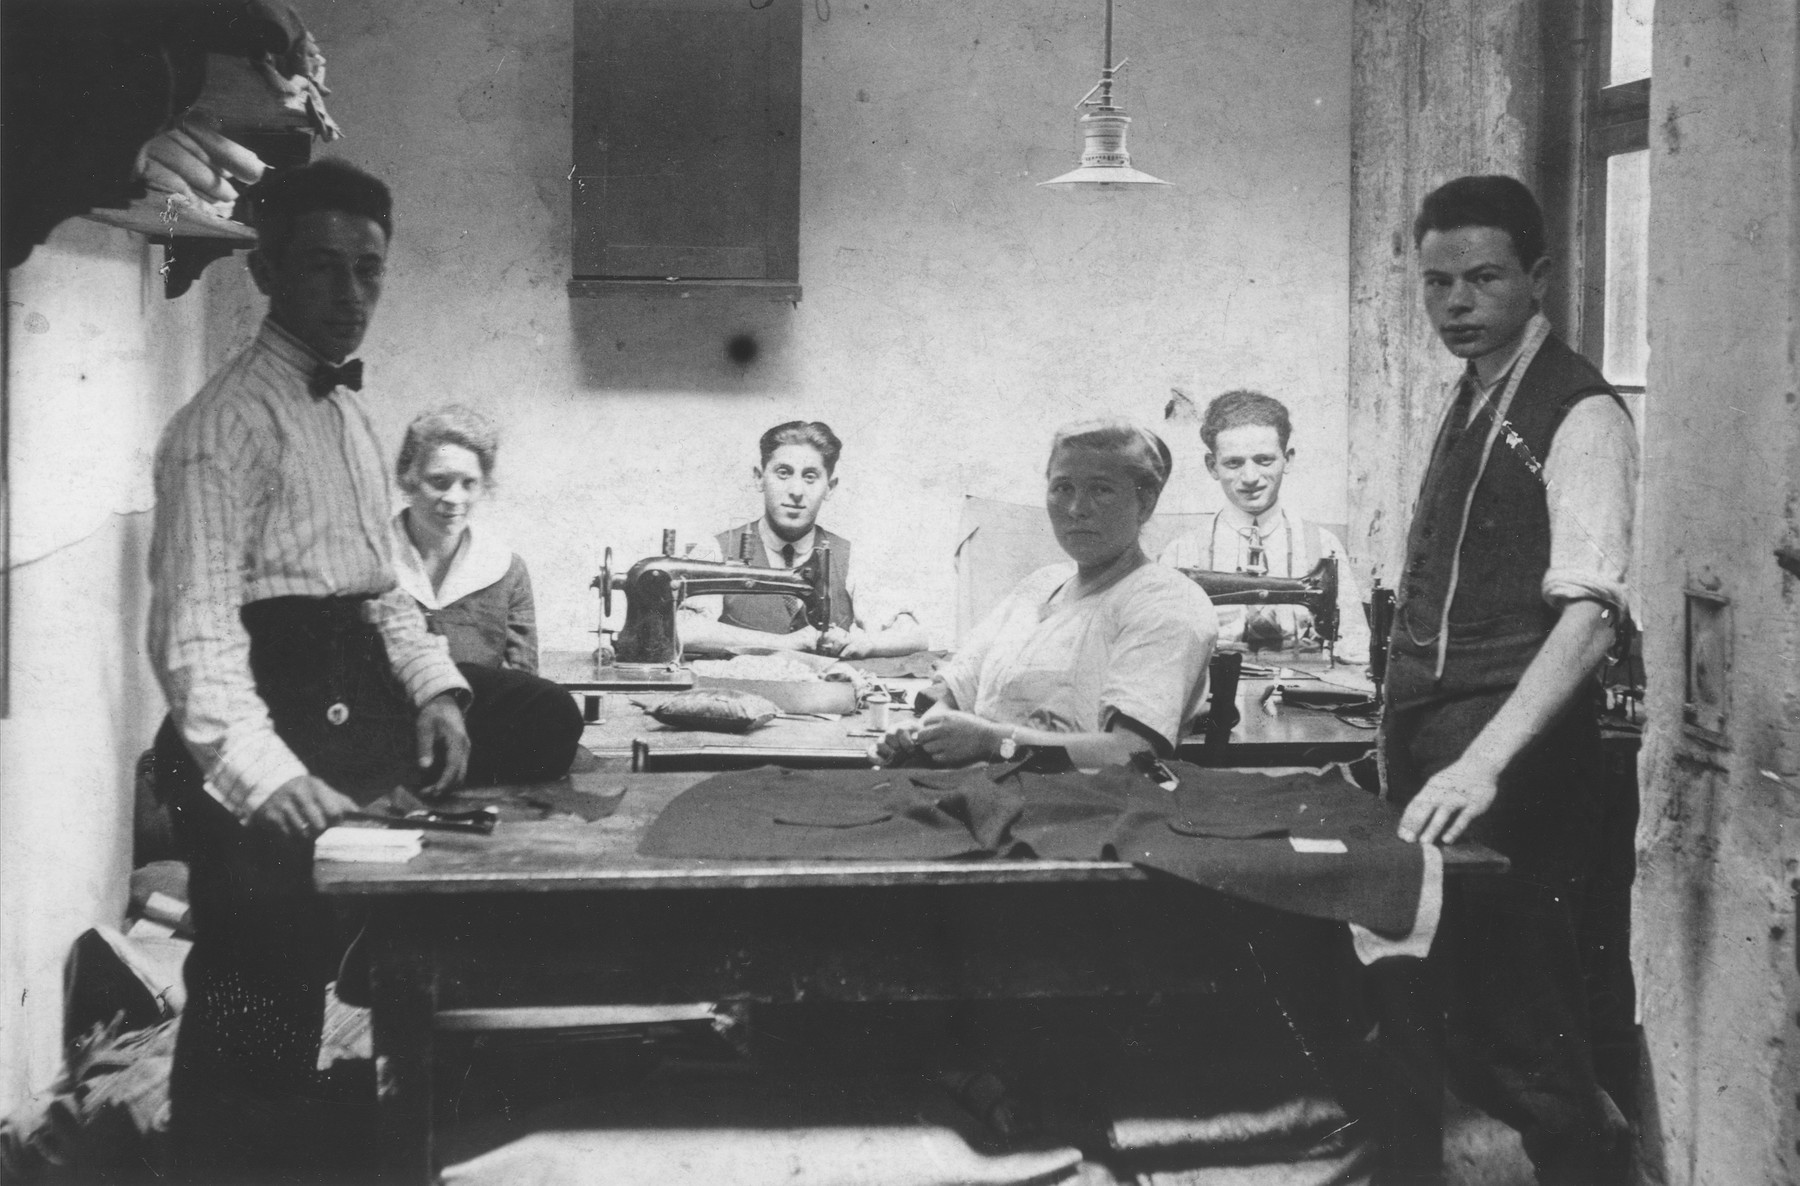 Jews at work in a tailor shop owned by Natan Wolf Lewkowicz in Bedzin, Poland.  Among those pictured is Natan Wolf Lewkowicz, the donor's father.